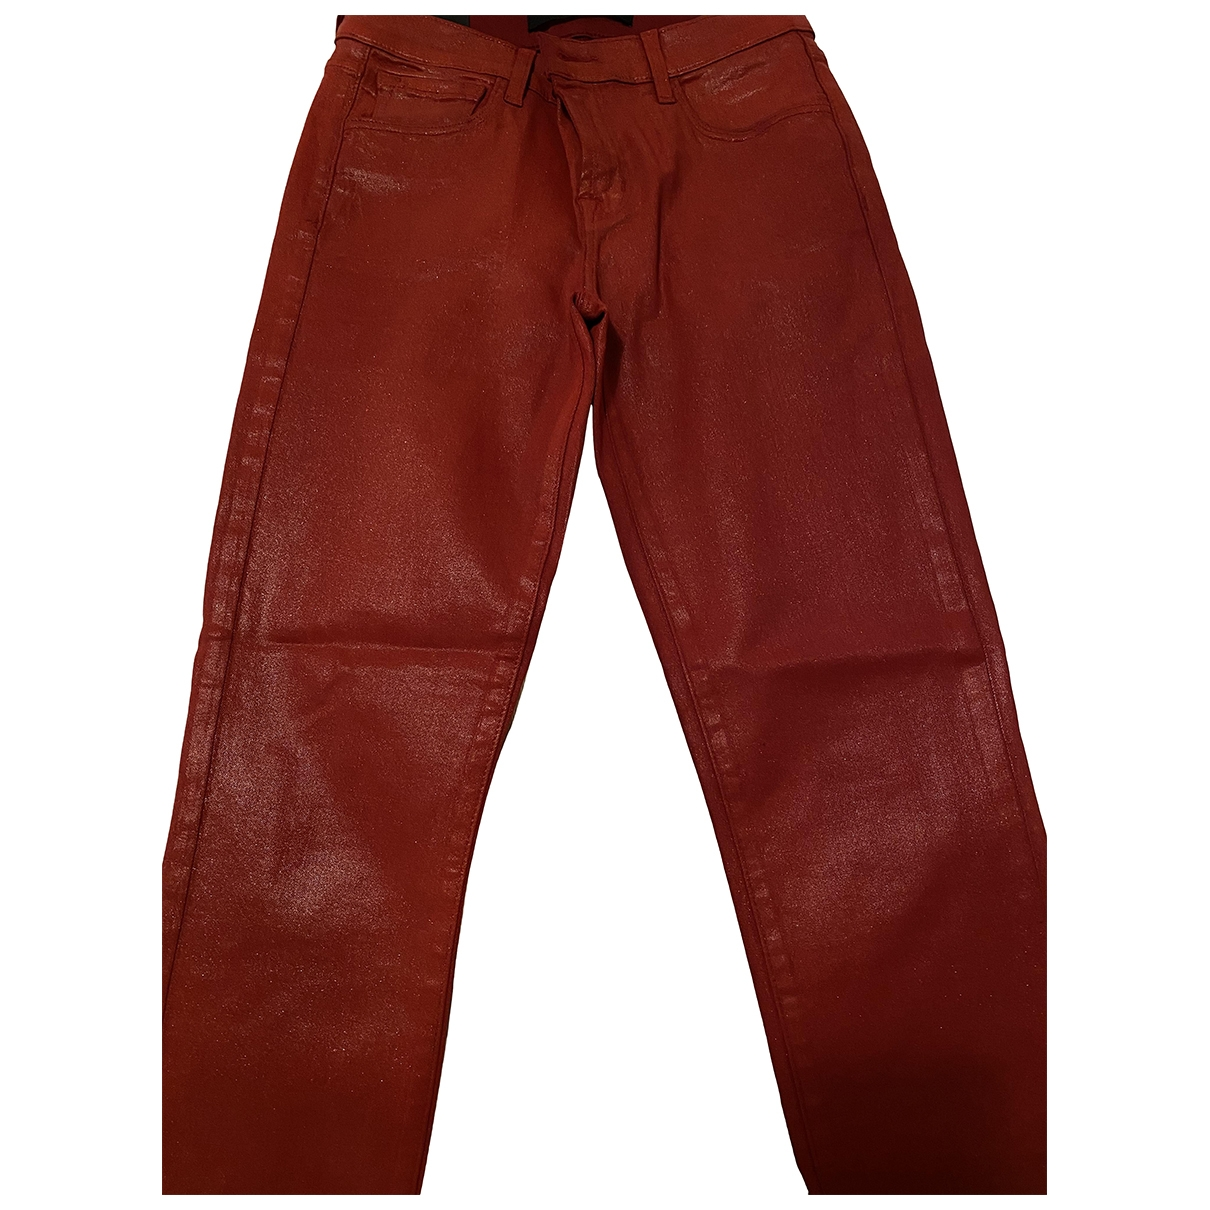 J Brand \N Red Leather Trousers for Women 36 IT